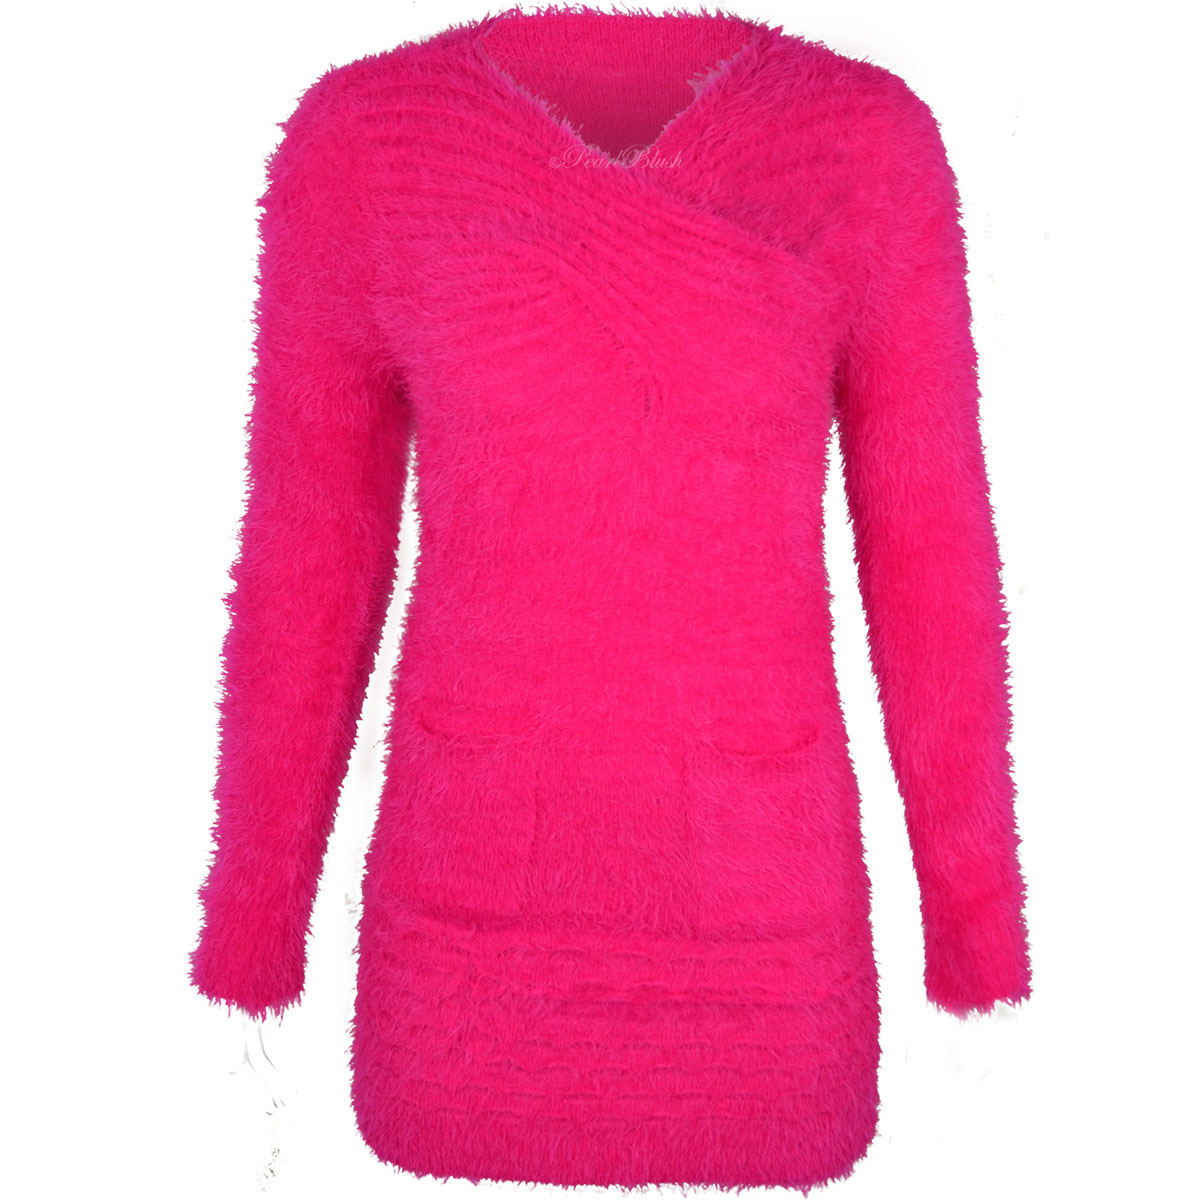 Buy low price, high quality fluffy woman jumpers with worldwide shipping on oraplanrans.tk